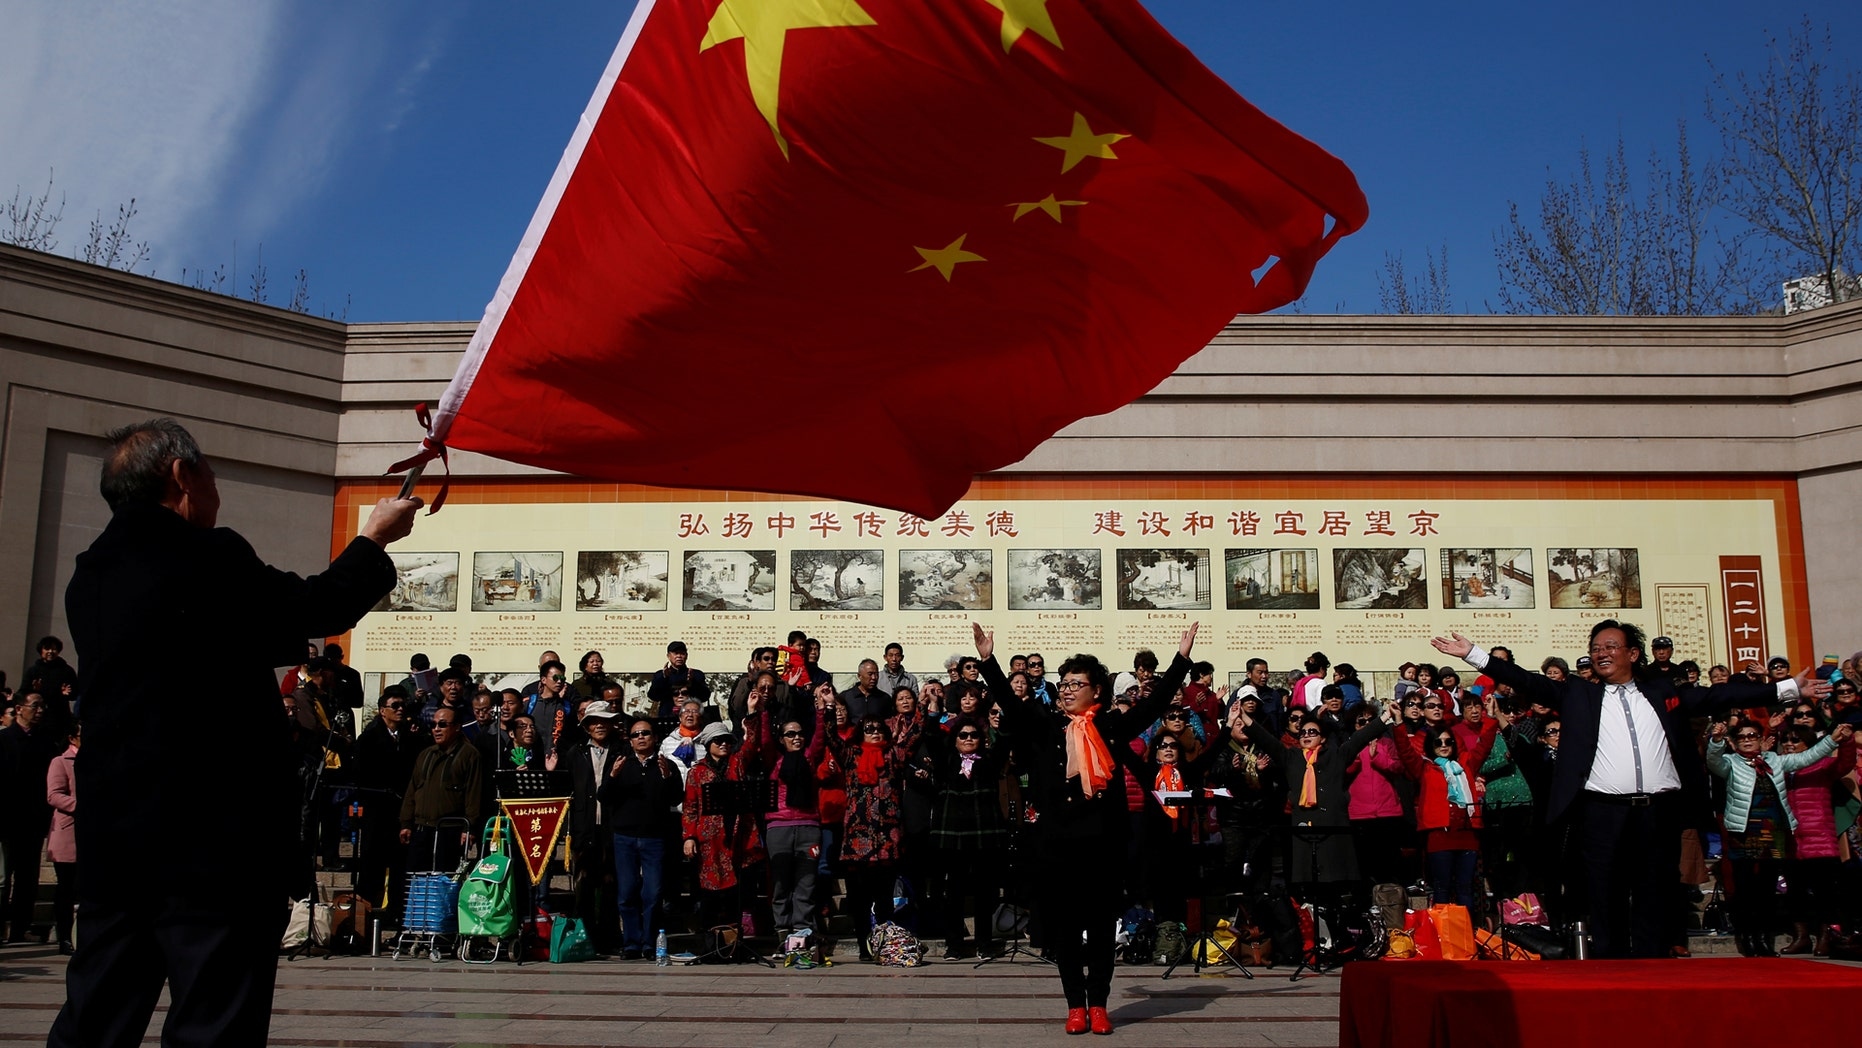 File photo: A man waves the Chinese national flag as an amateur choir performs in a park in a residential neighborhood in Beijing, China February 28, 2017. (REUTERS/Thomas Peter)